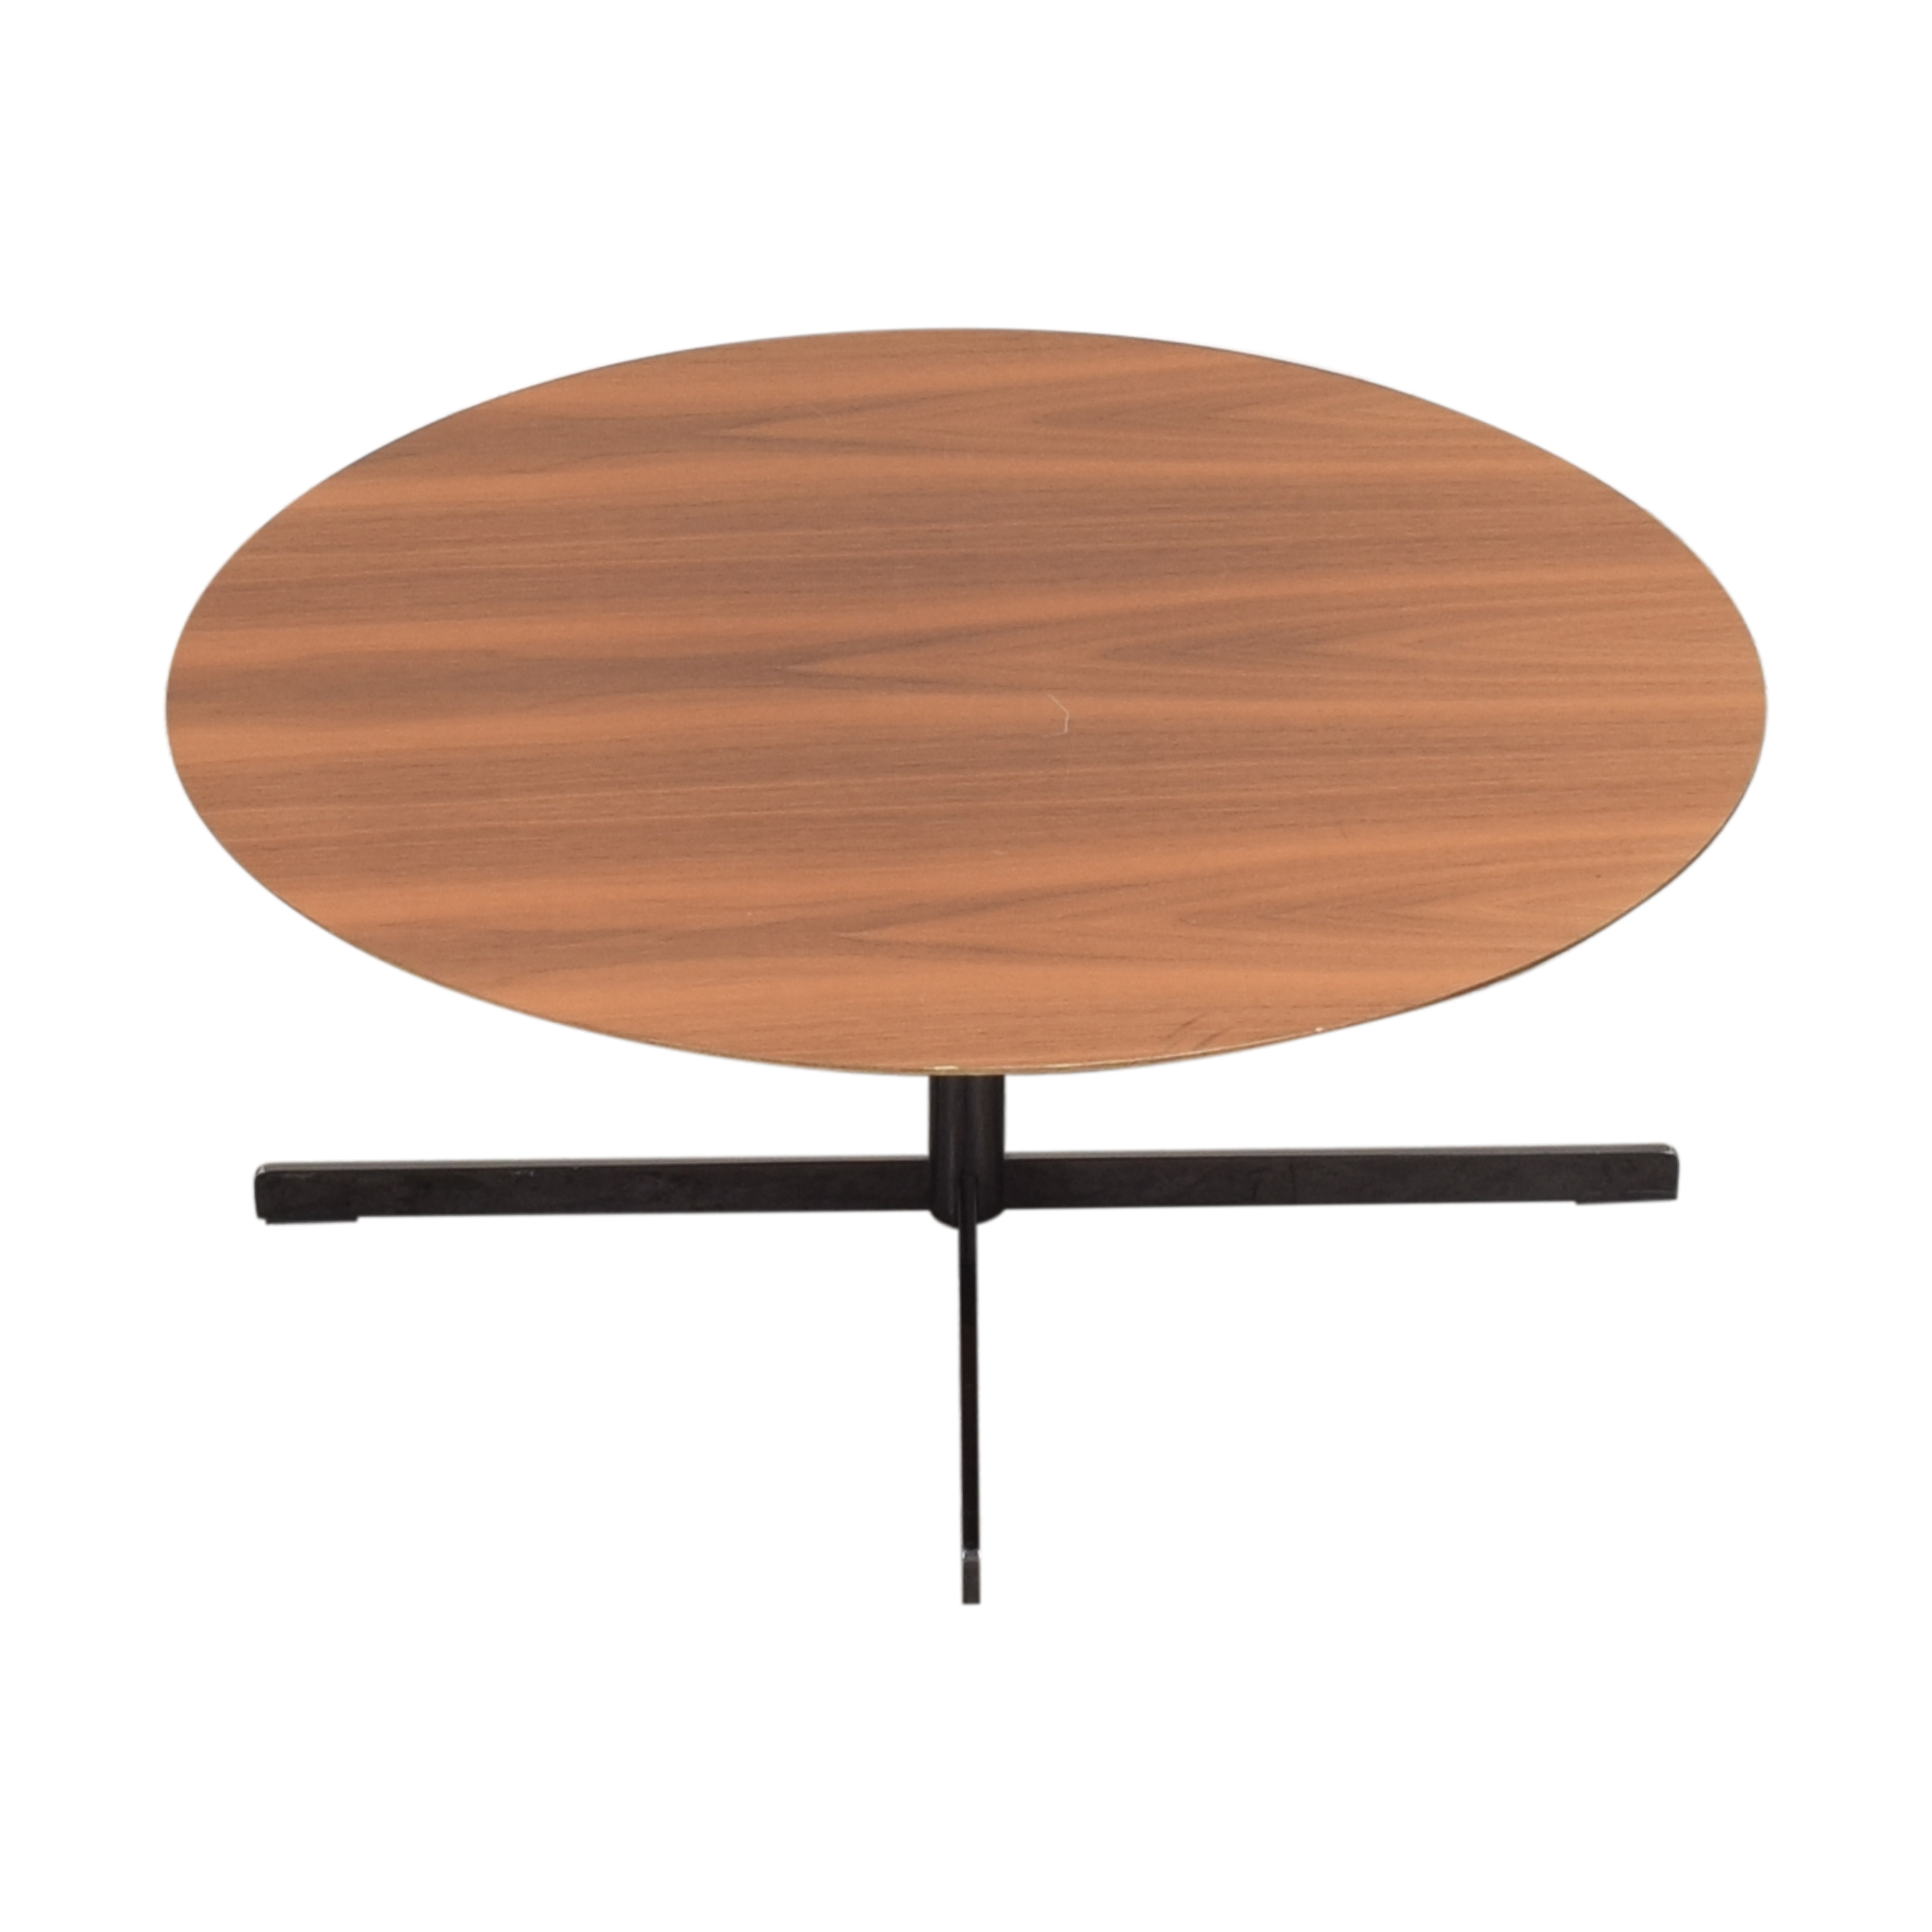 Poltrona Frau Poltrona Frau Bob Coffee Table price